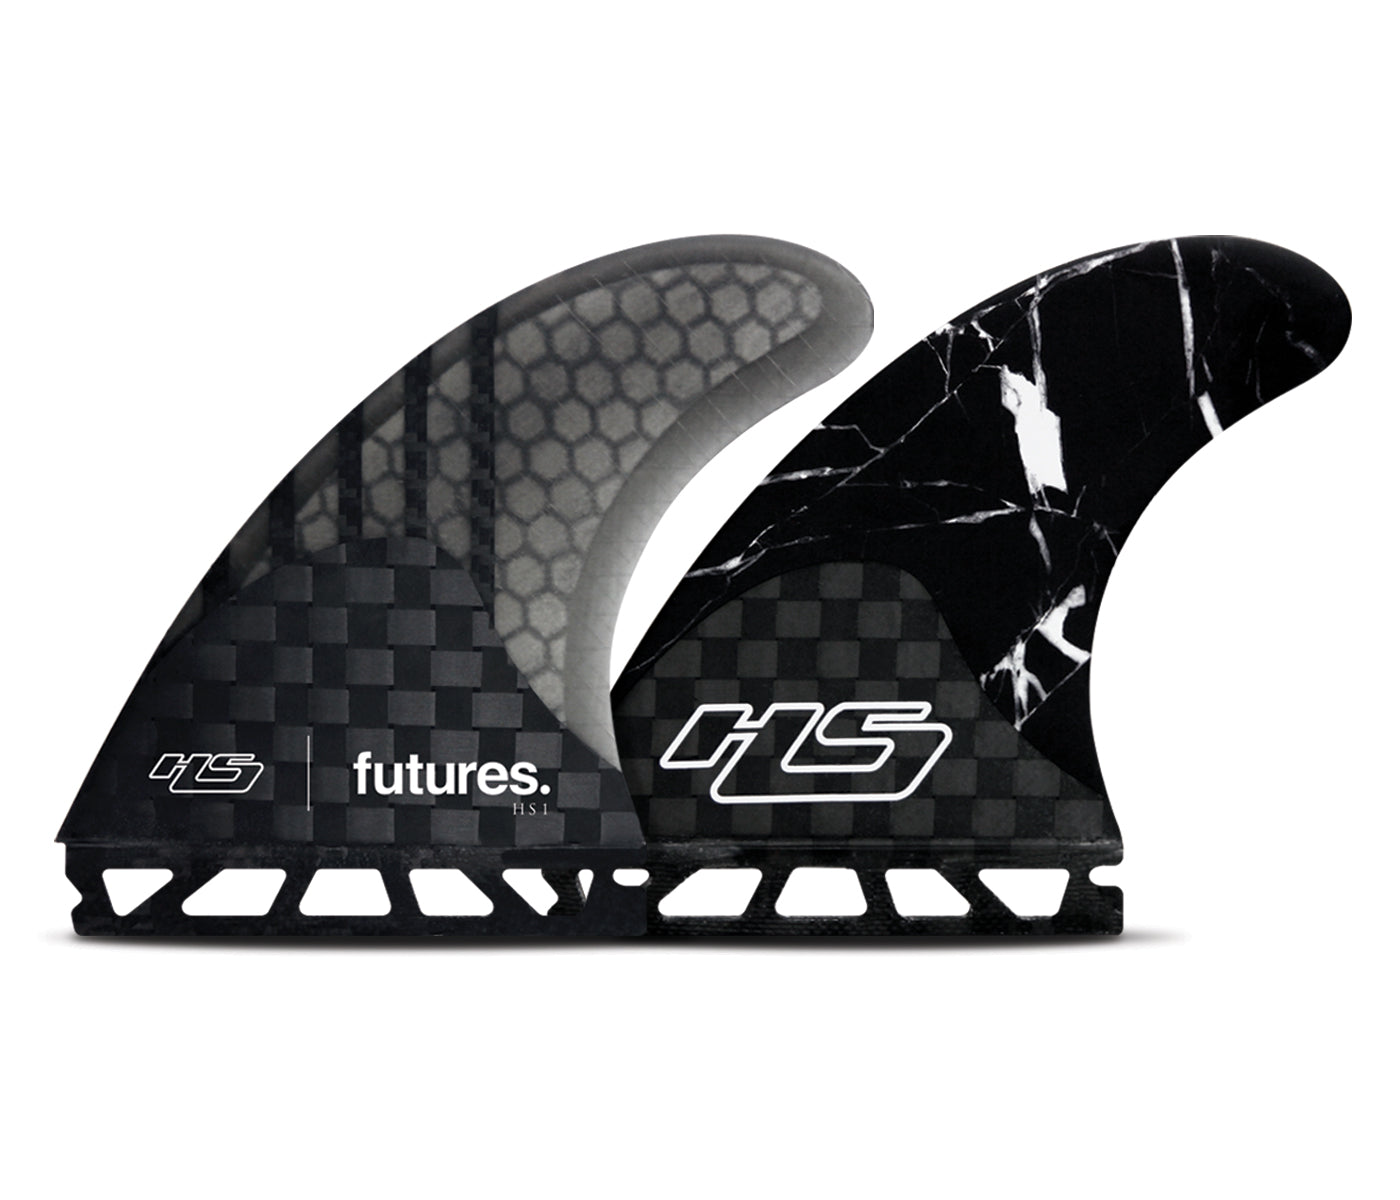 HS1 Generation, Speed Generating, Large Thruster Surfboard Fins